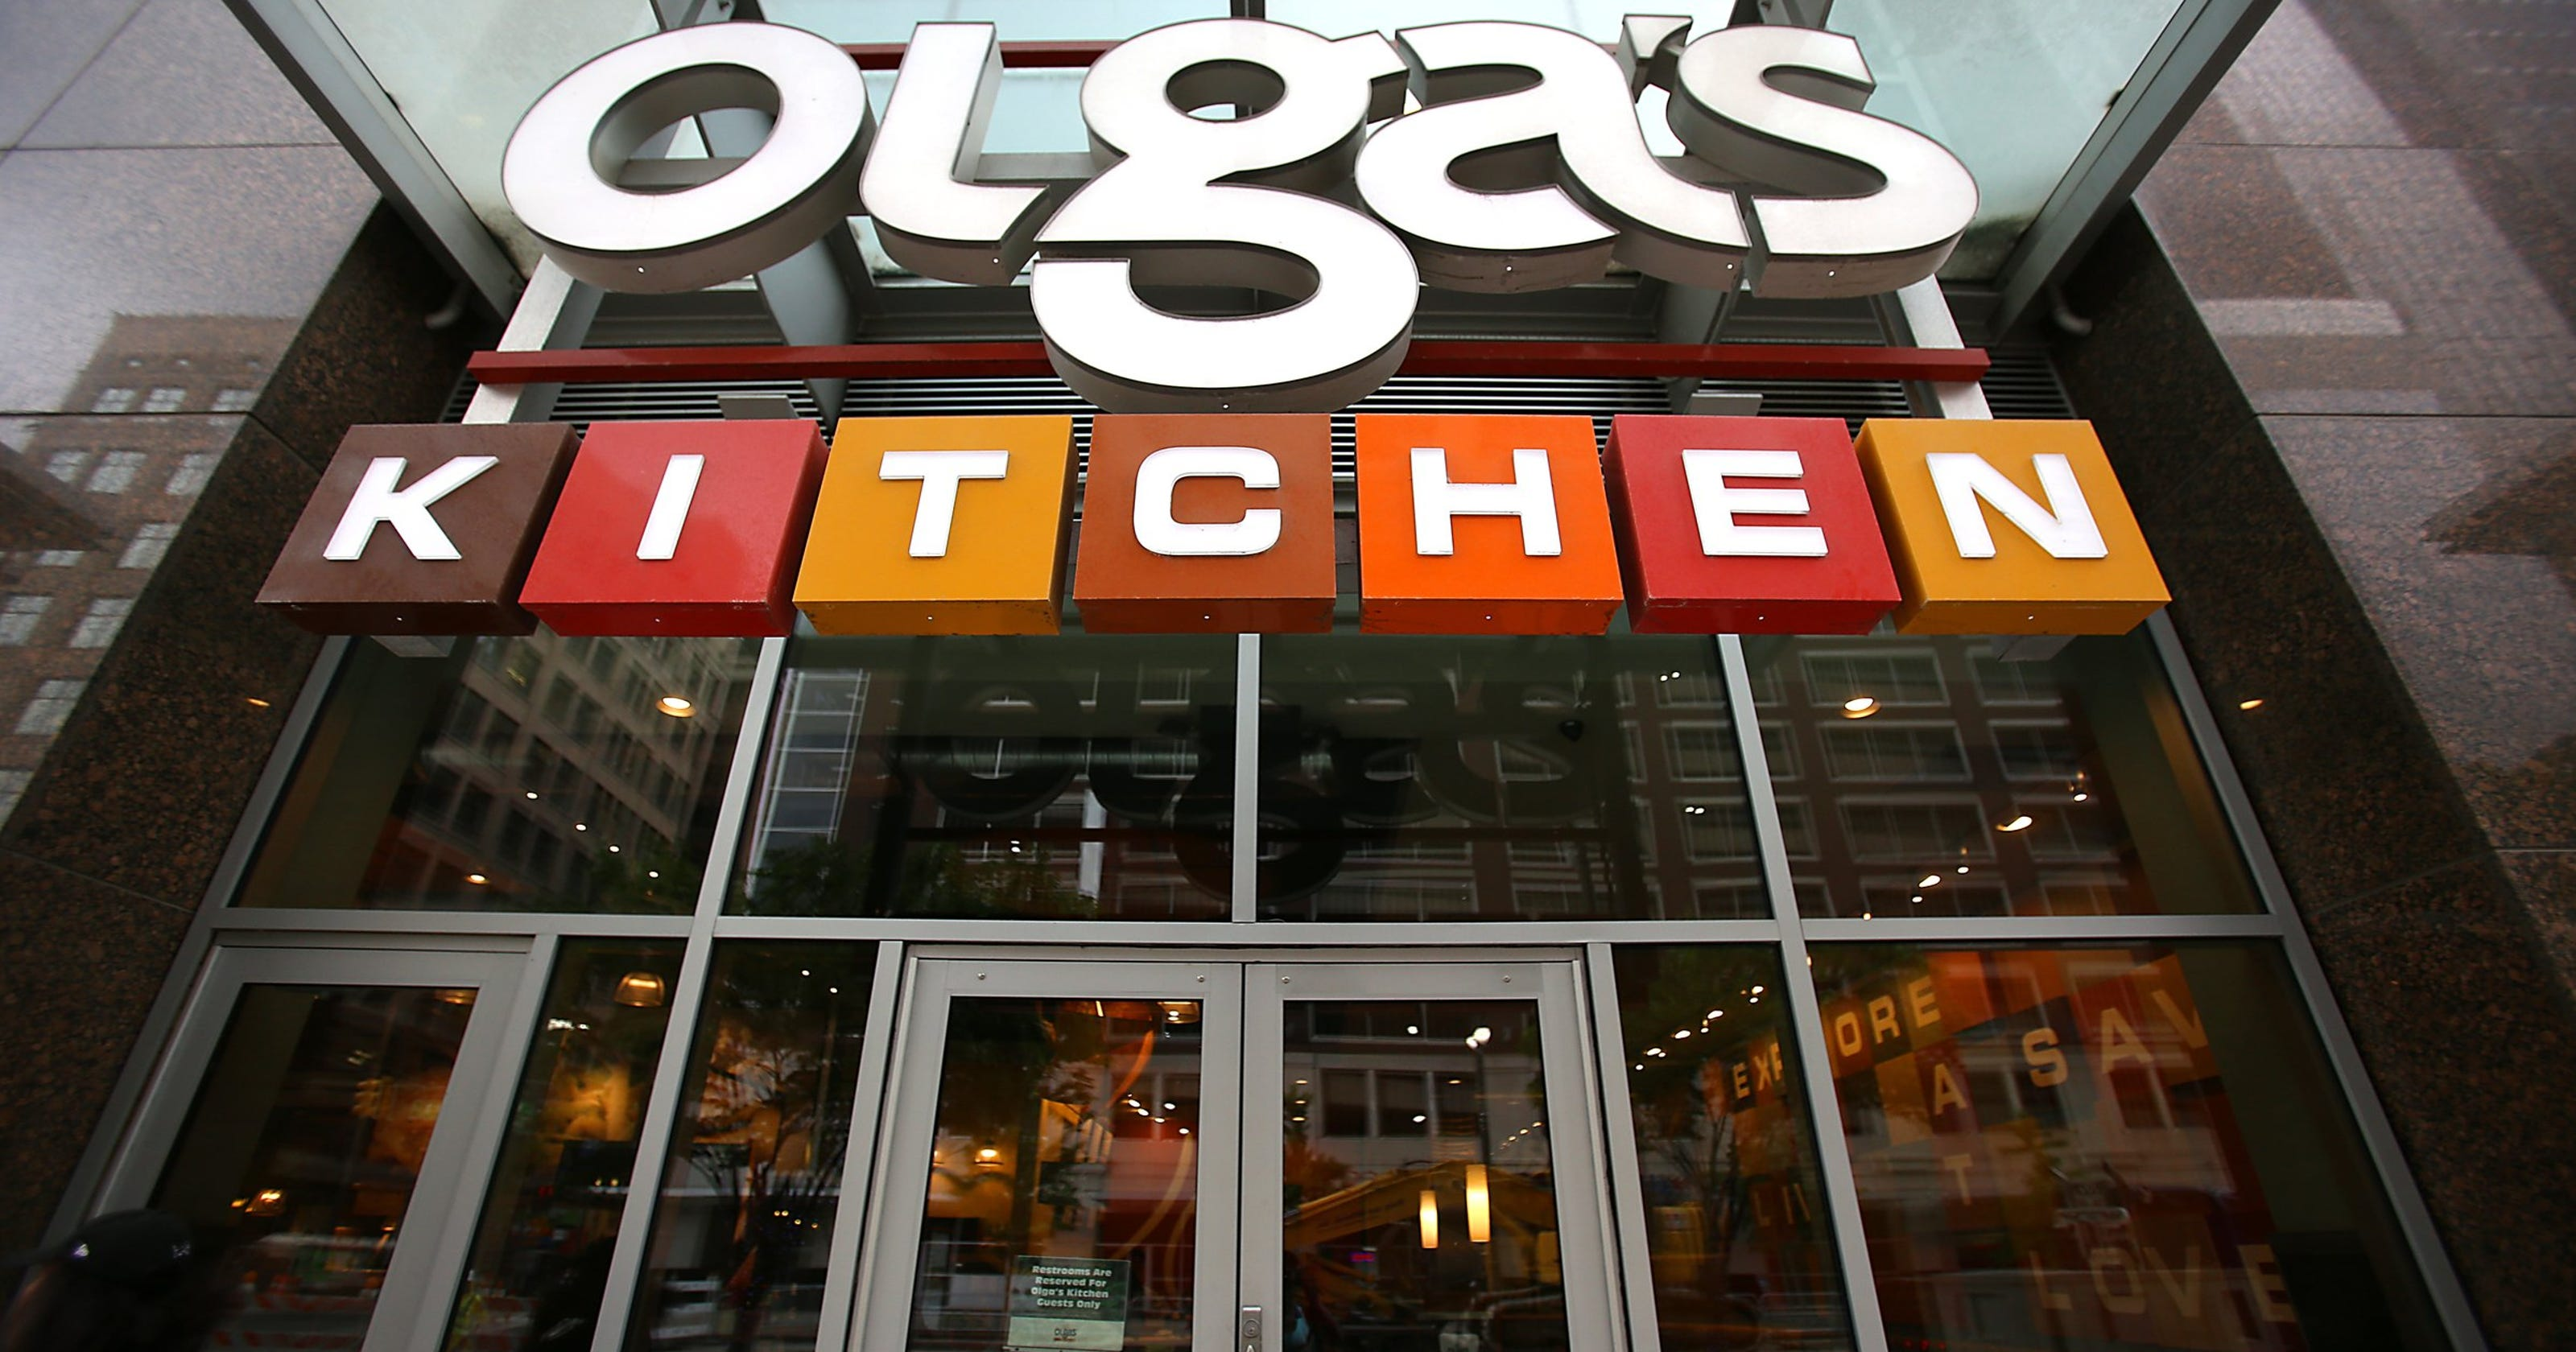 olgas seeks to restructure debt in bankruptcy emerge with new owner - Olgas Kitchen